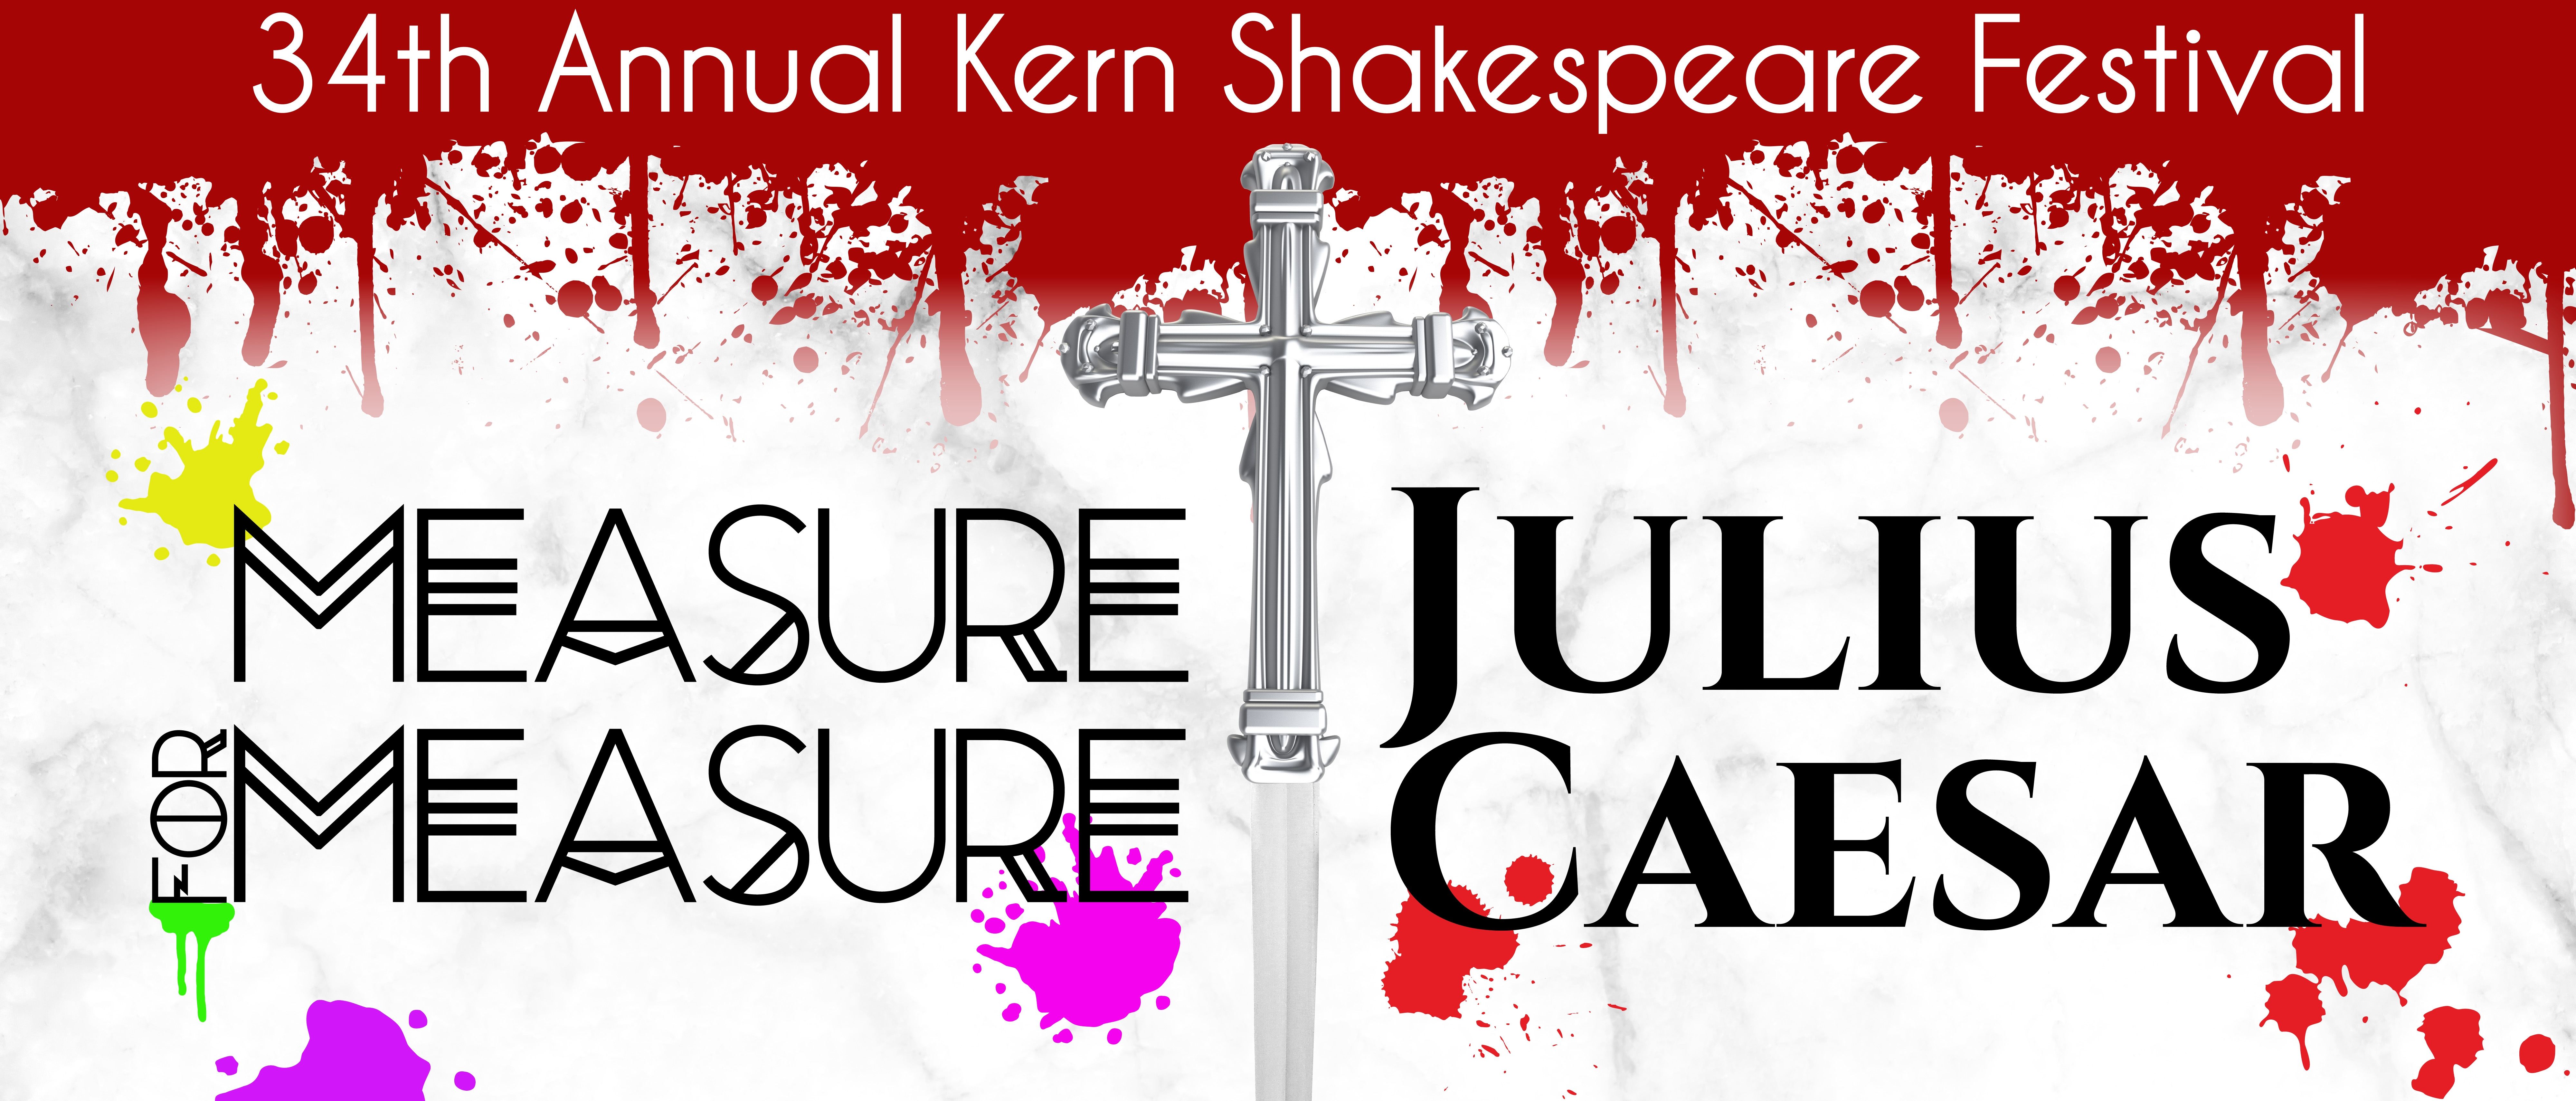 Two Plays Featured in the 34th Annual Kern Shakespeare Festival